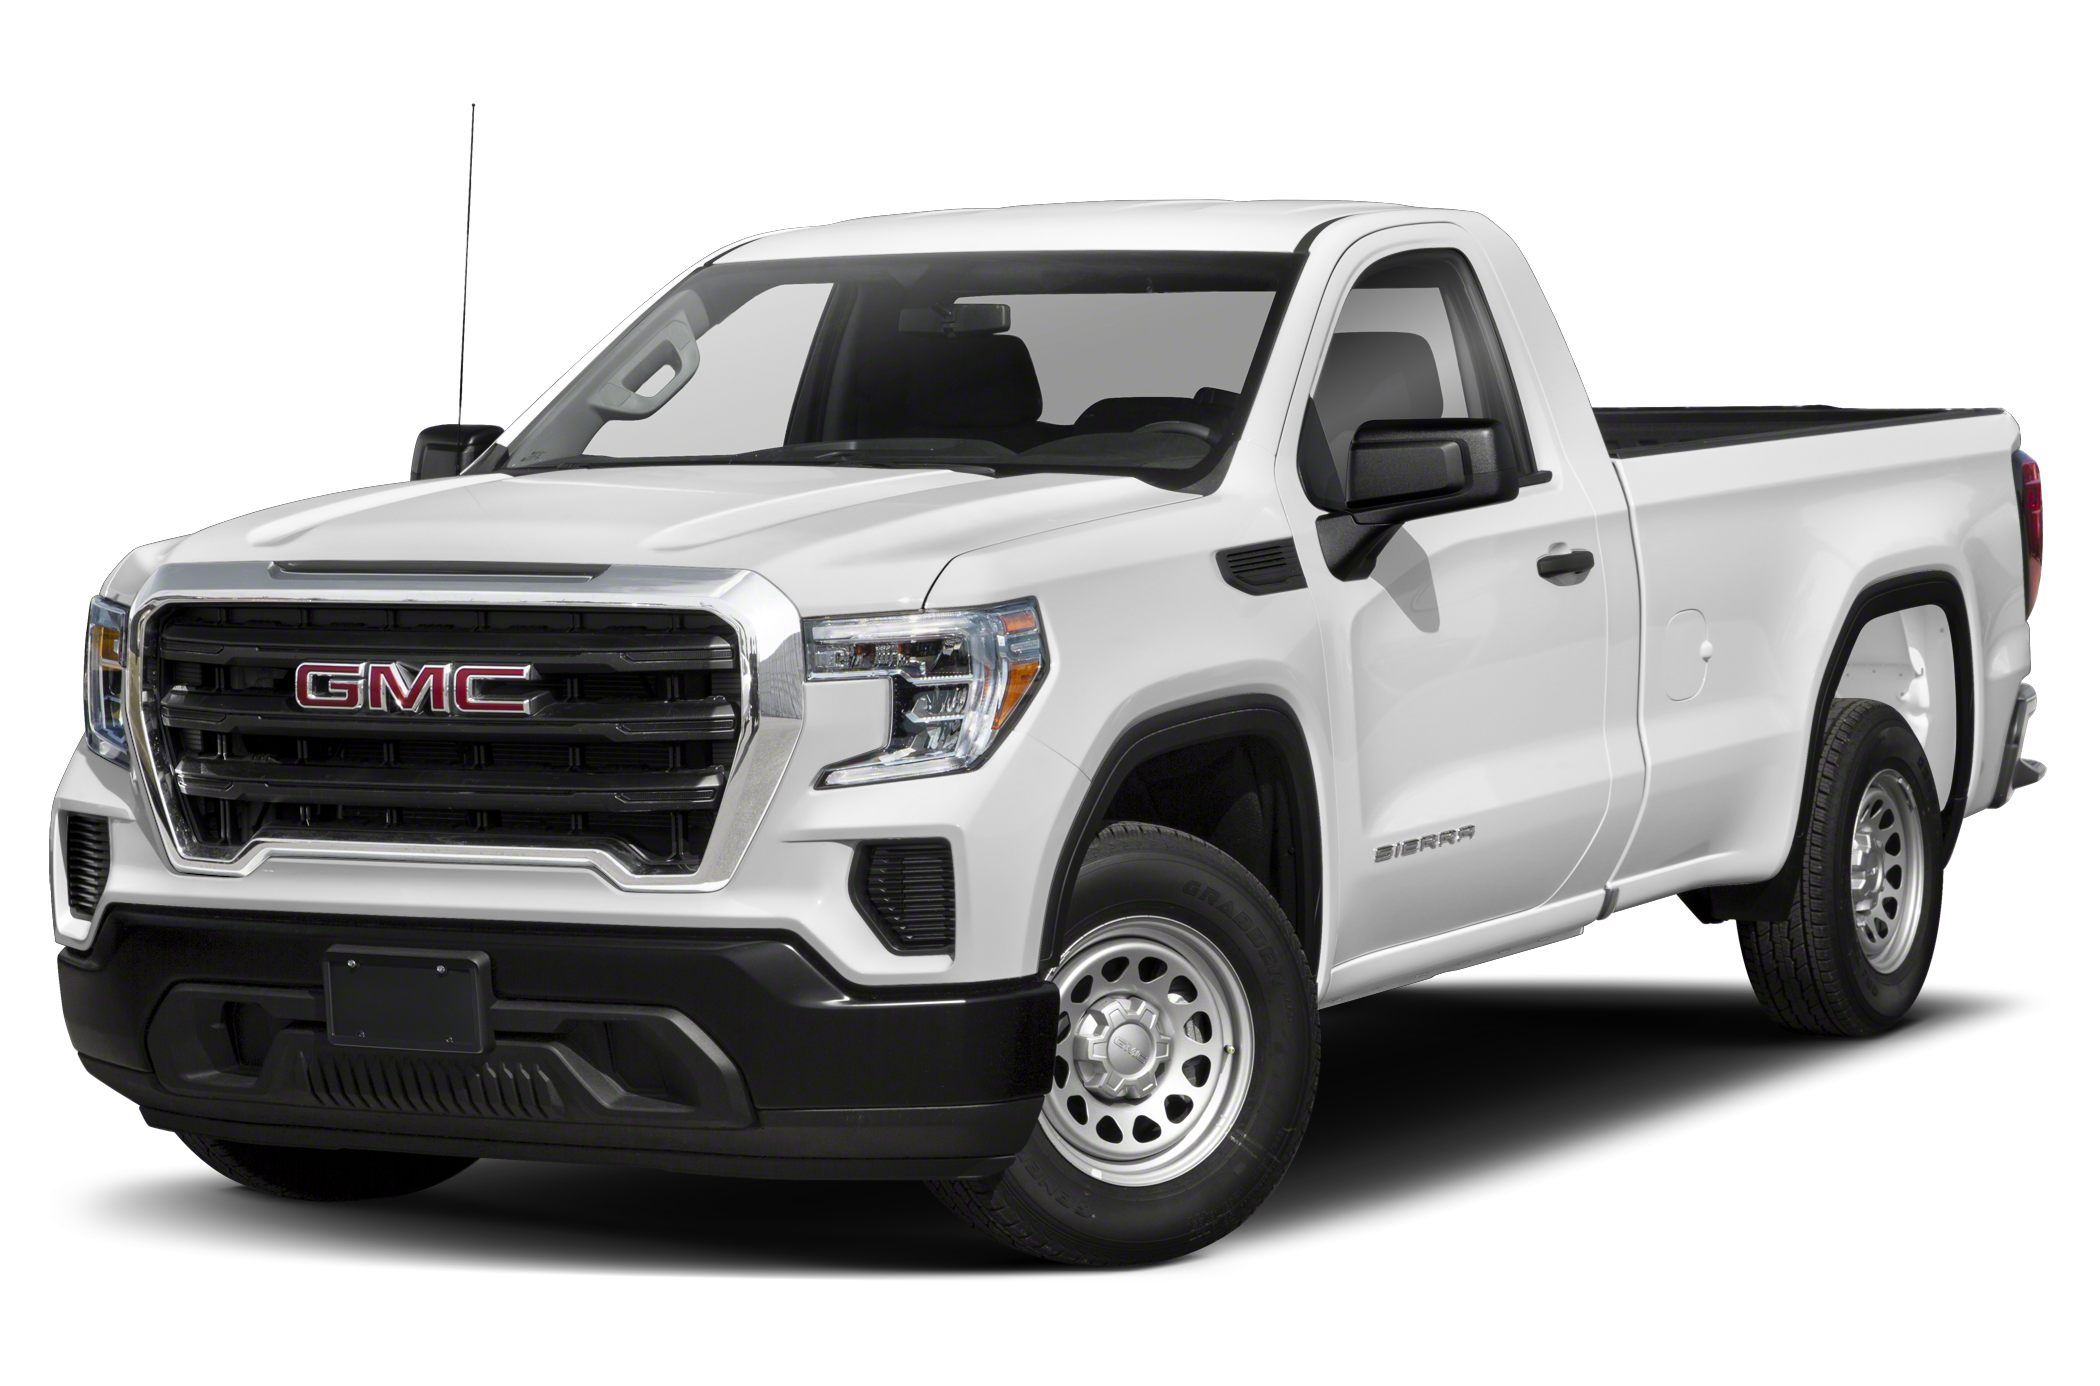 2020 Gmc Sierra Build And Price Review And Release Date Di 2020